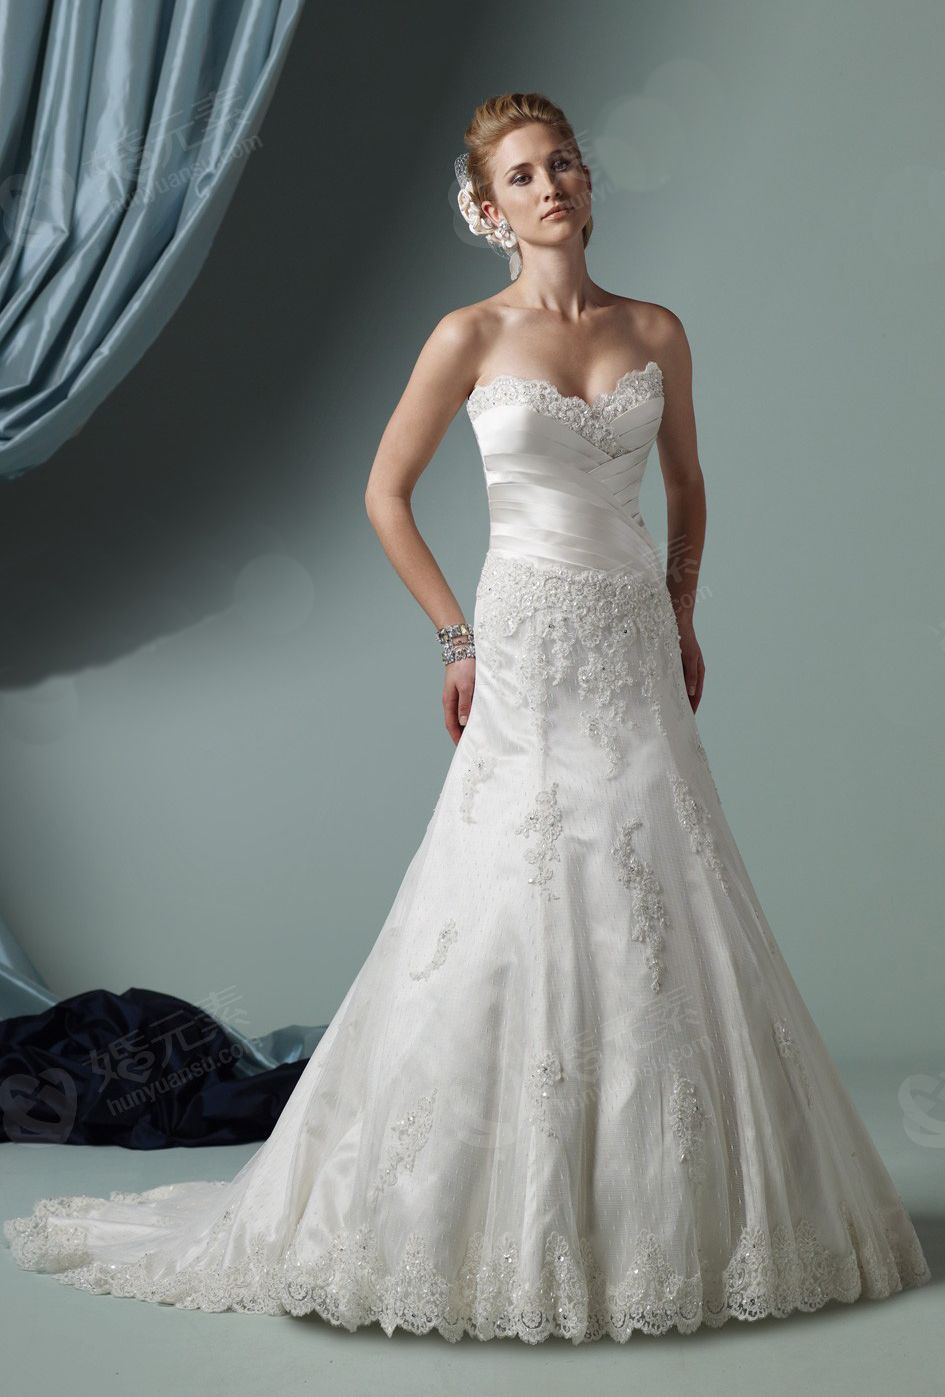 Modern Country Style Wedding Dresses Mold - All Wedding Dresses ...